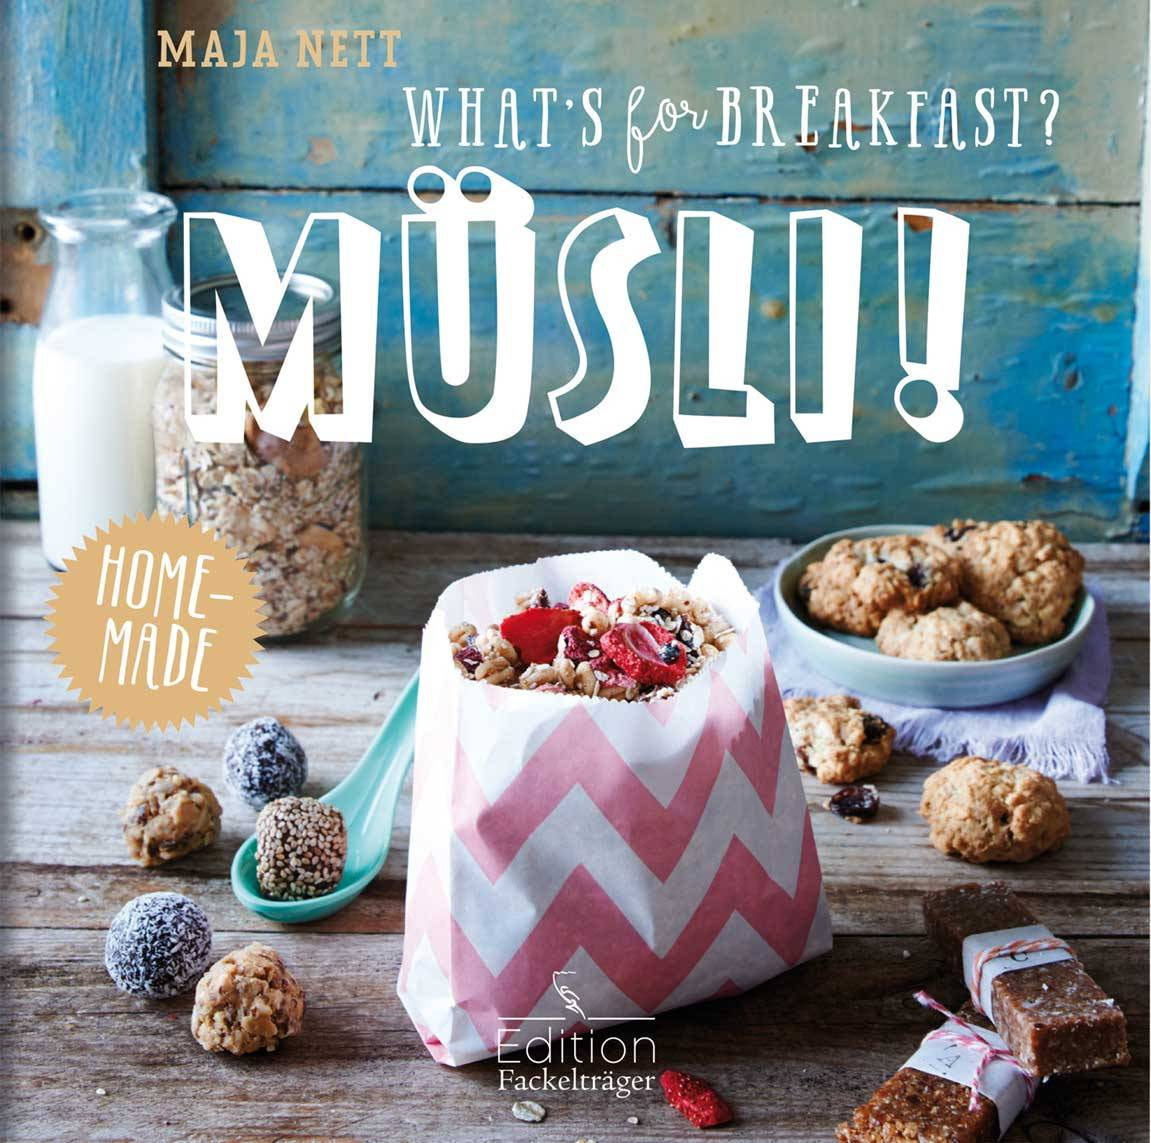 Maja Nett: WHAT'S FOR BREAKFAST? MÜSLI !